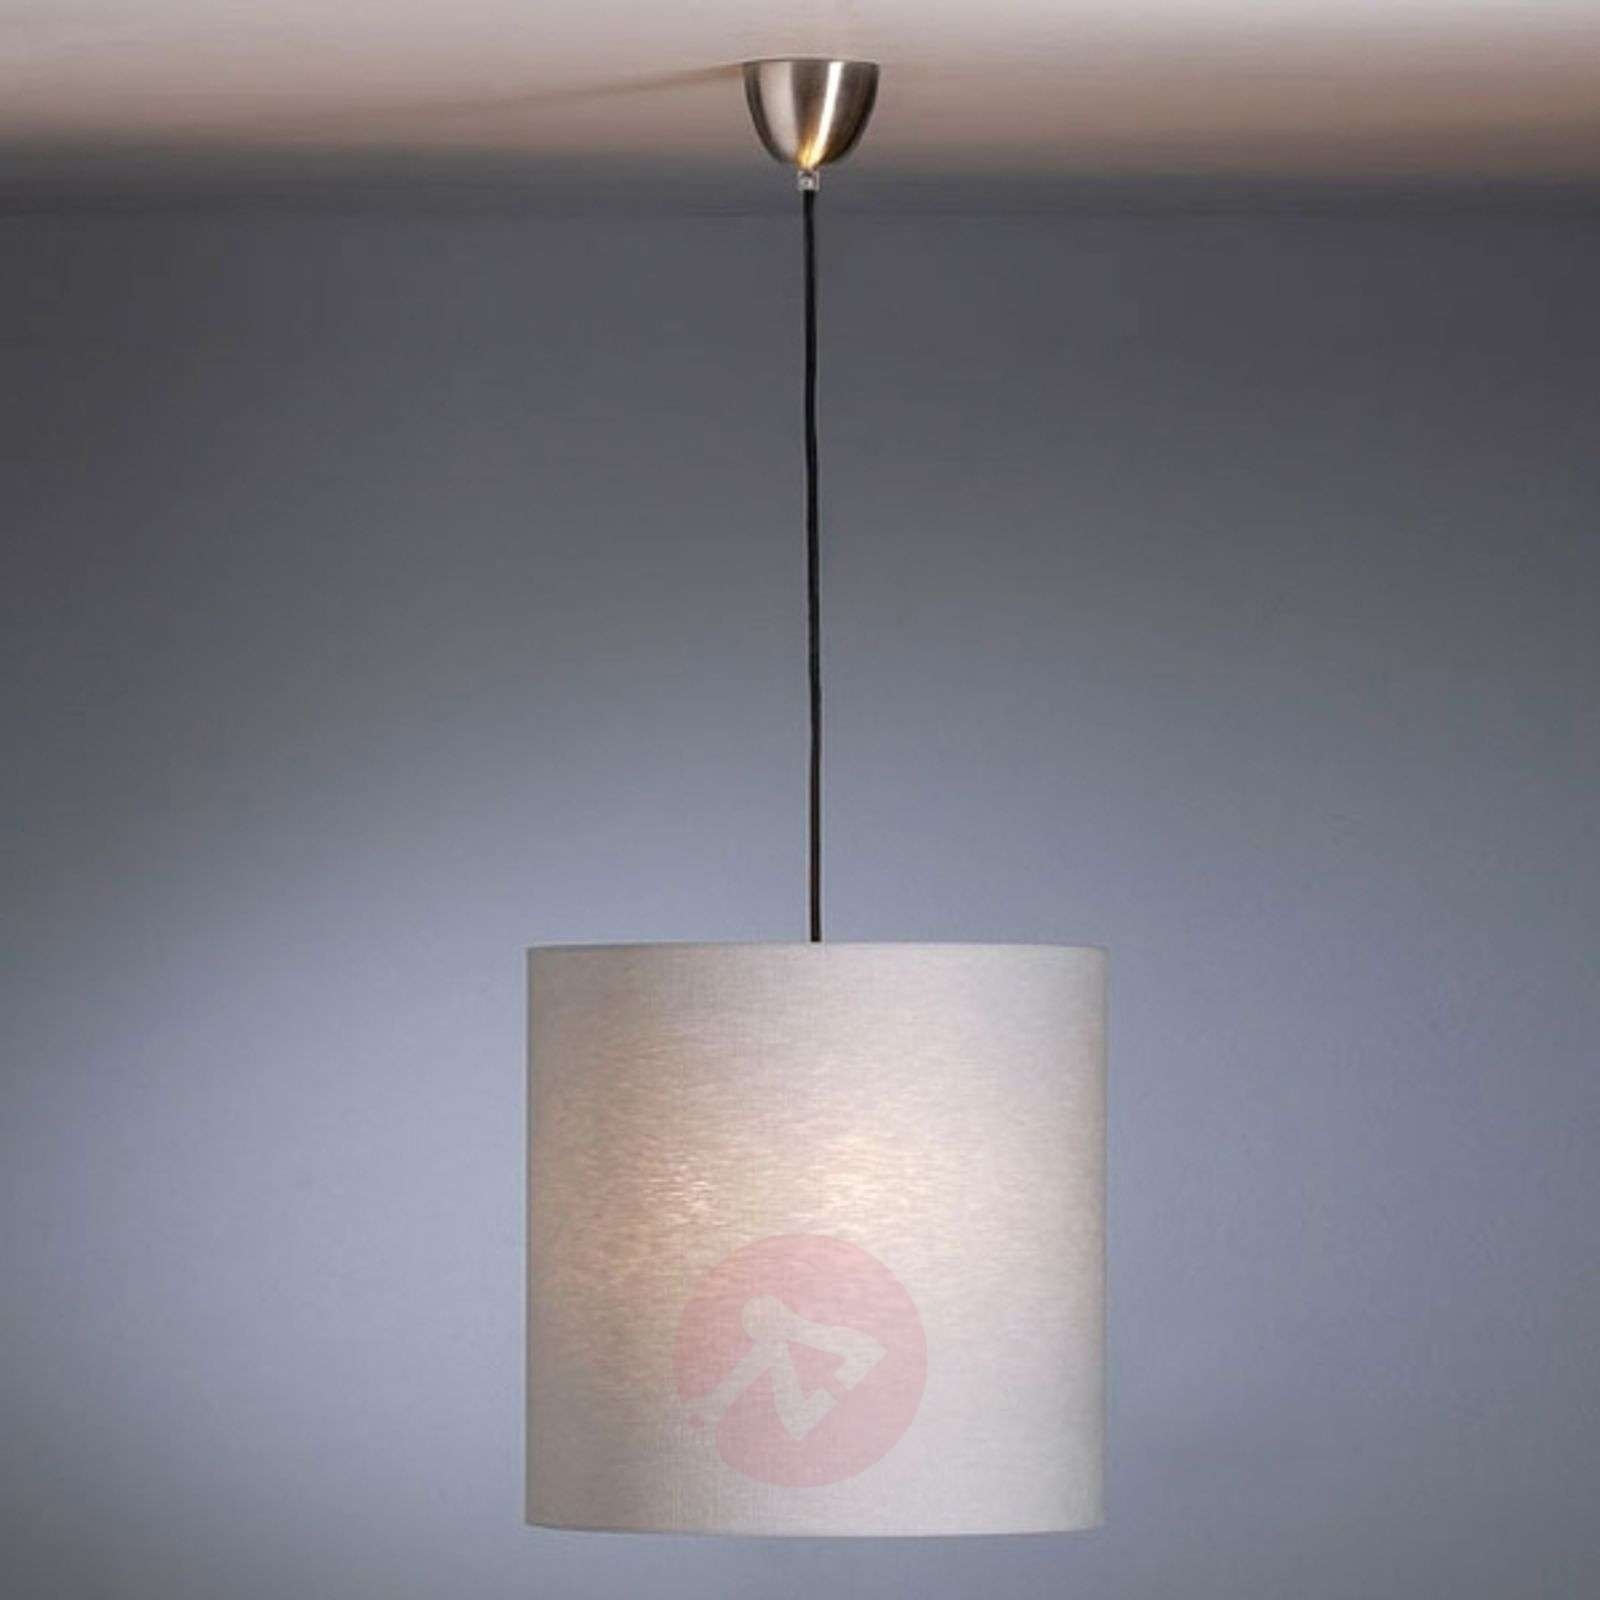 Pendant light by Schnepel, natural, linen-9030170-01